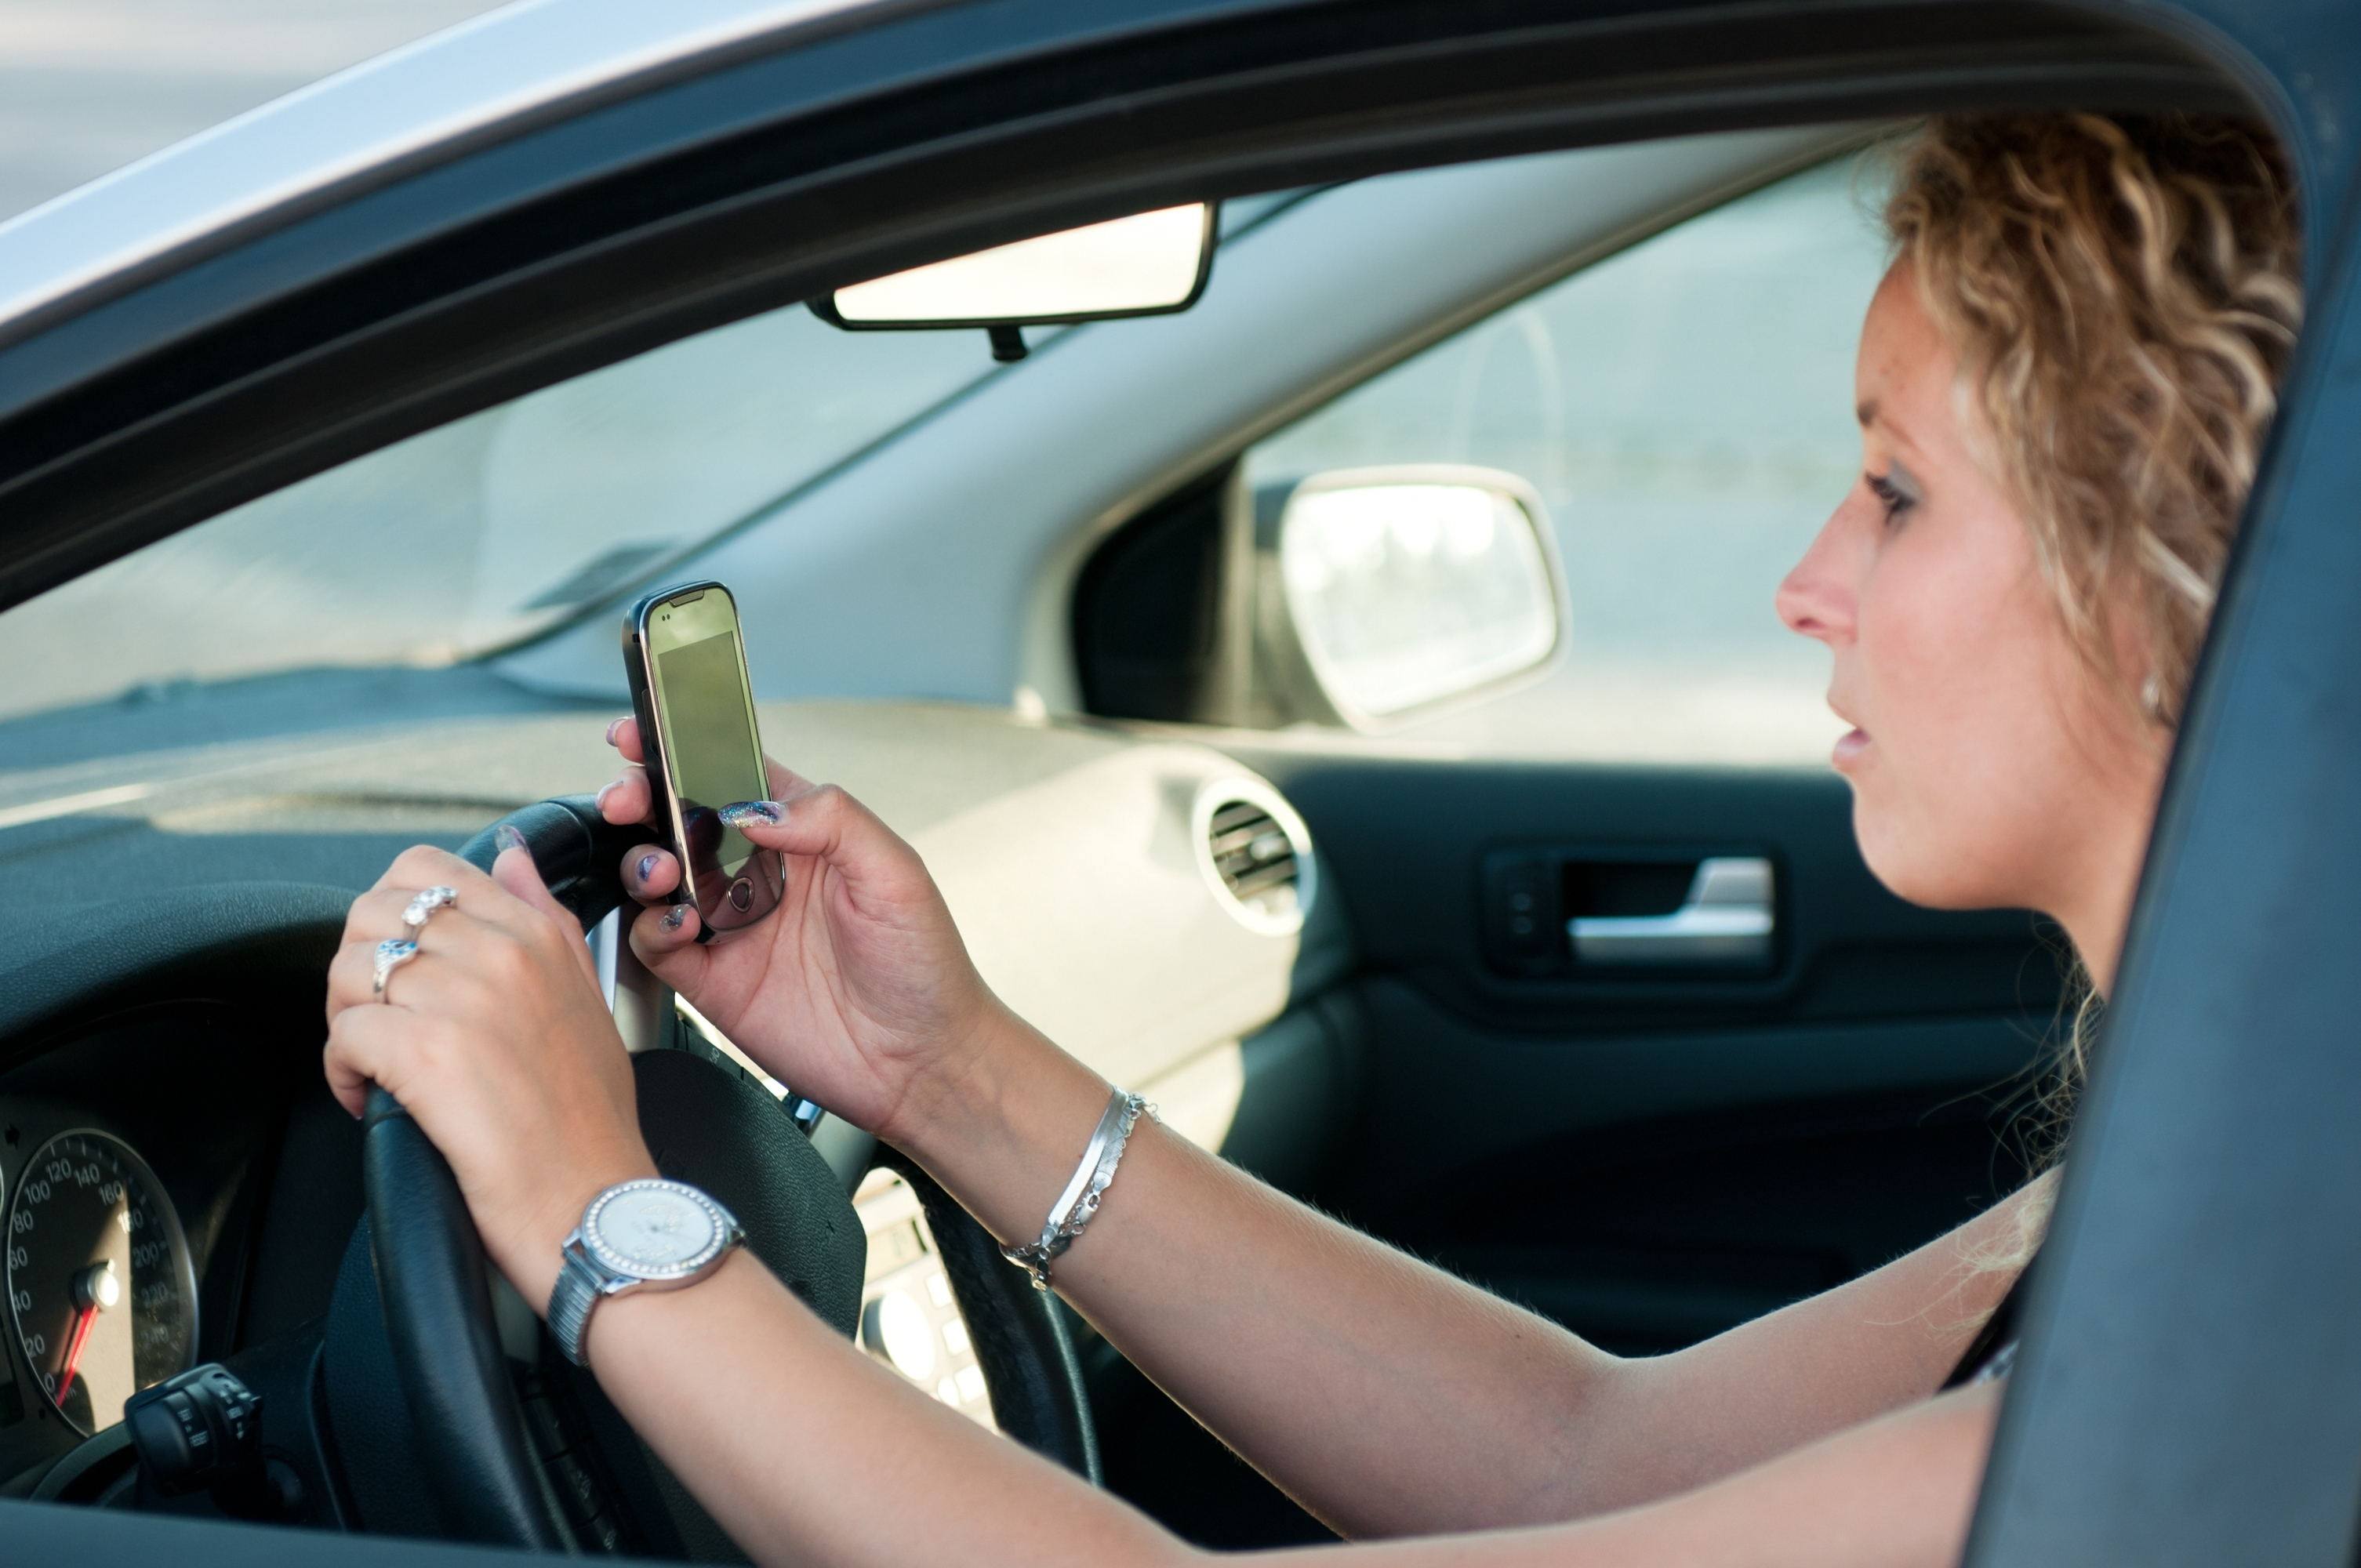 Dch Freehold Toyota Texting And Driving 5 Seconds To Crash